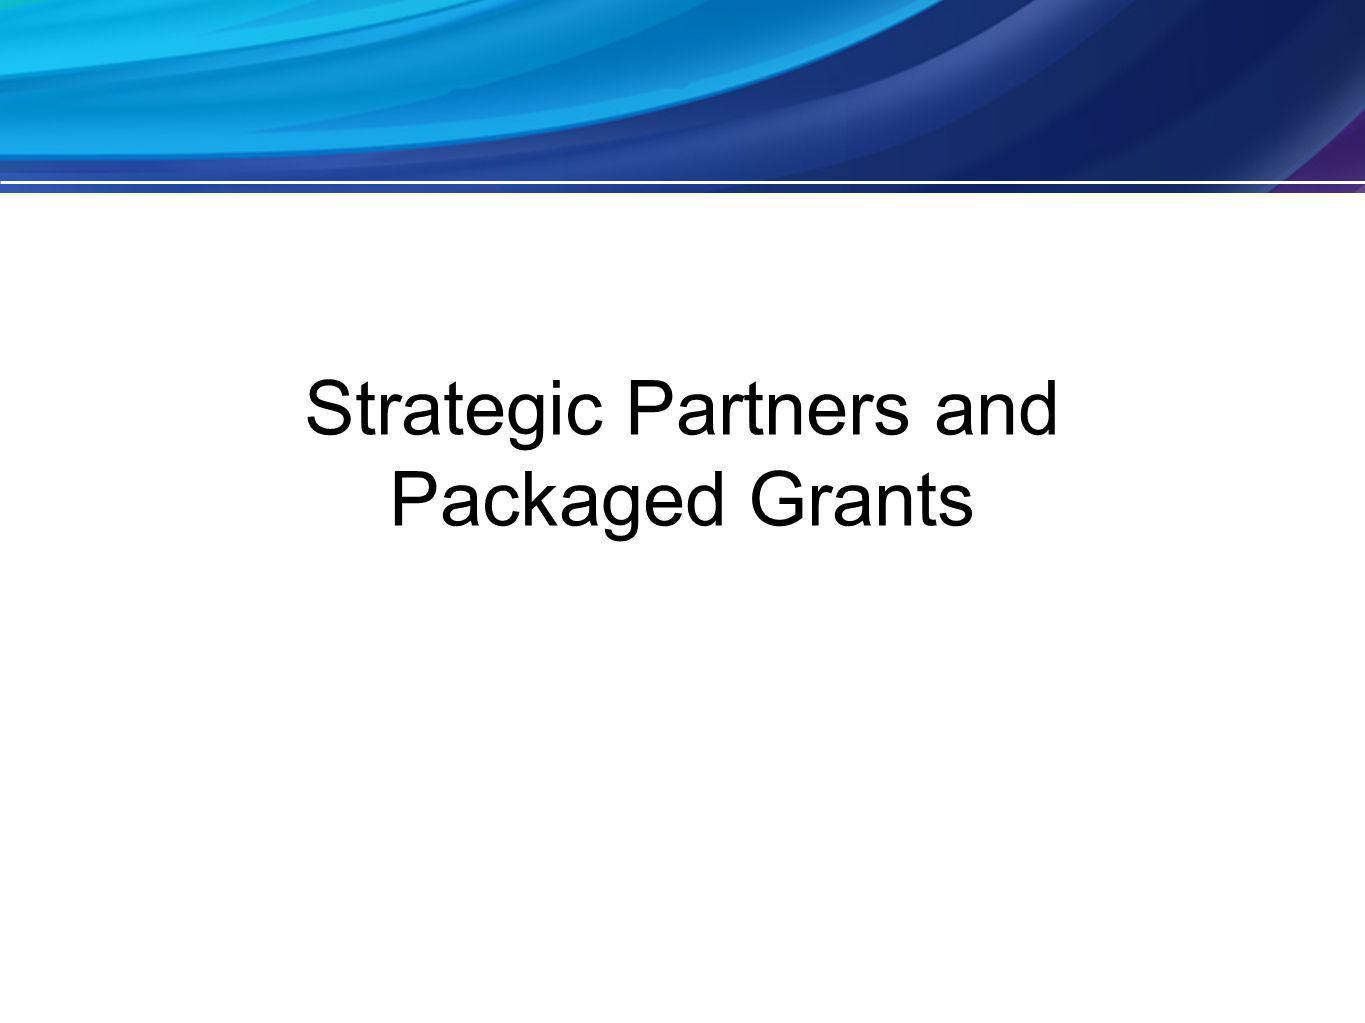 Strategic Partners and Packaged Grants